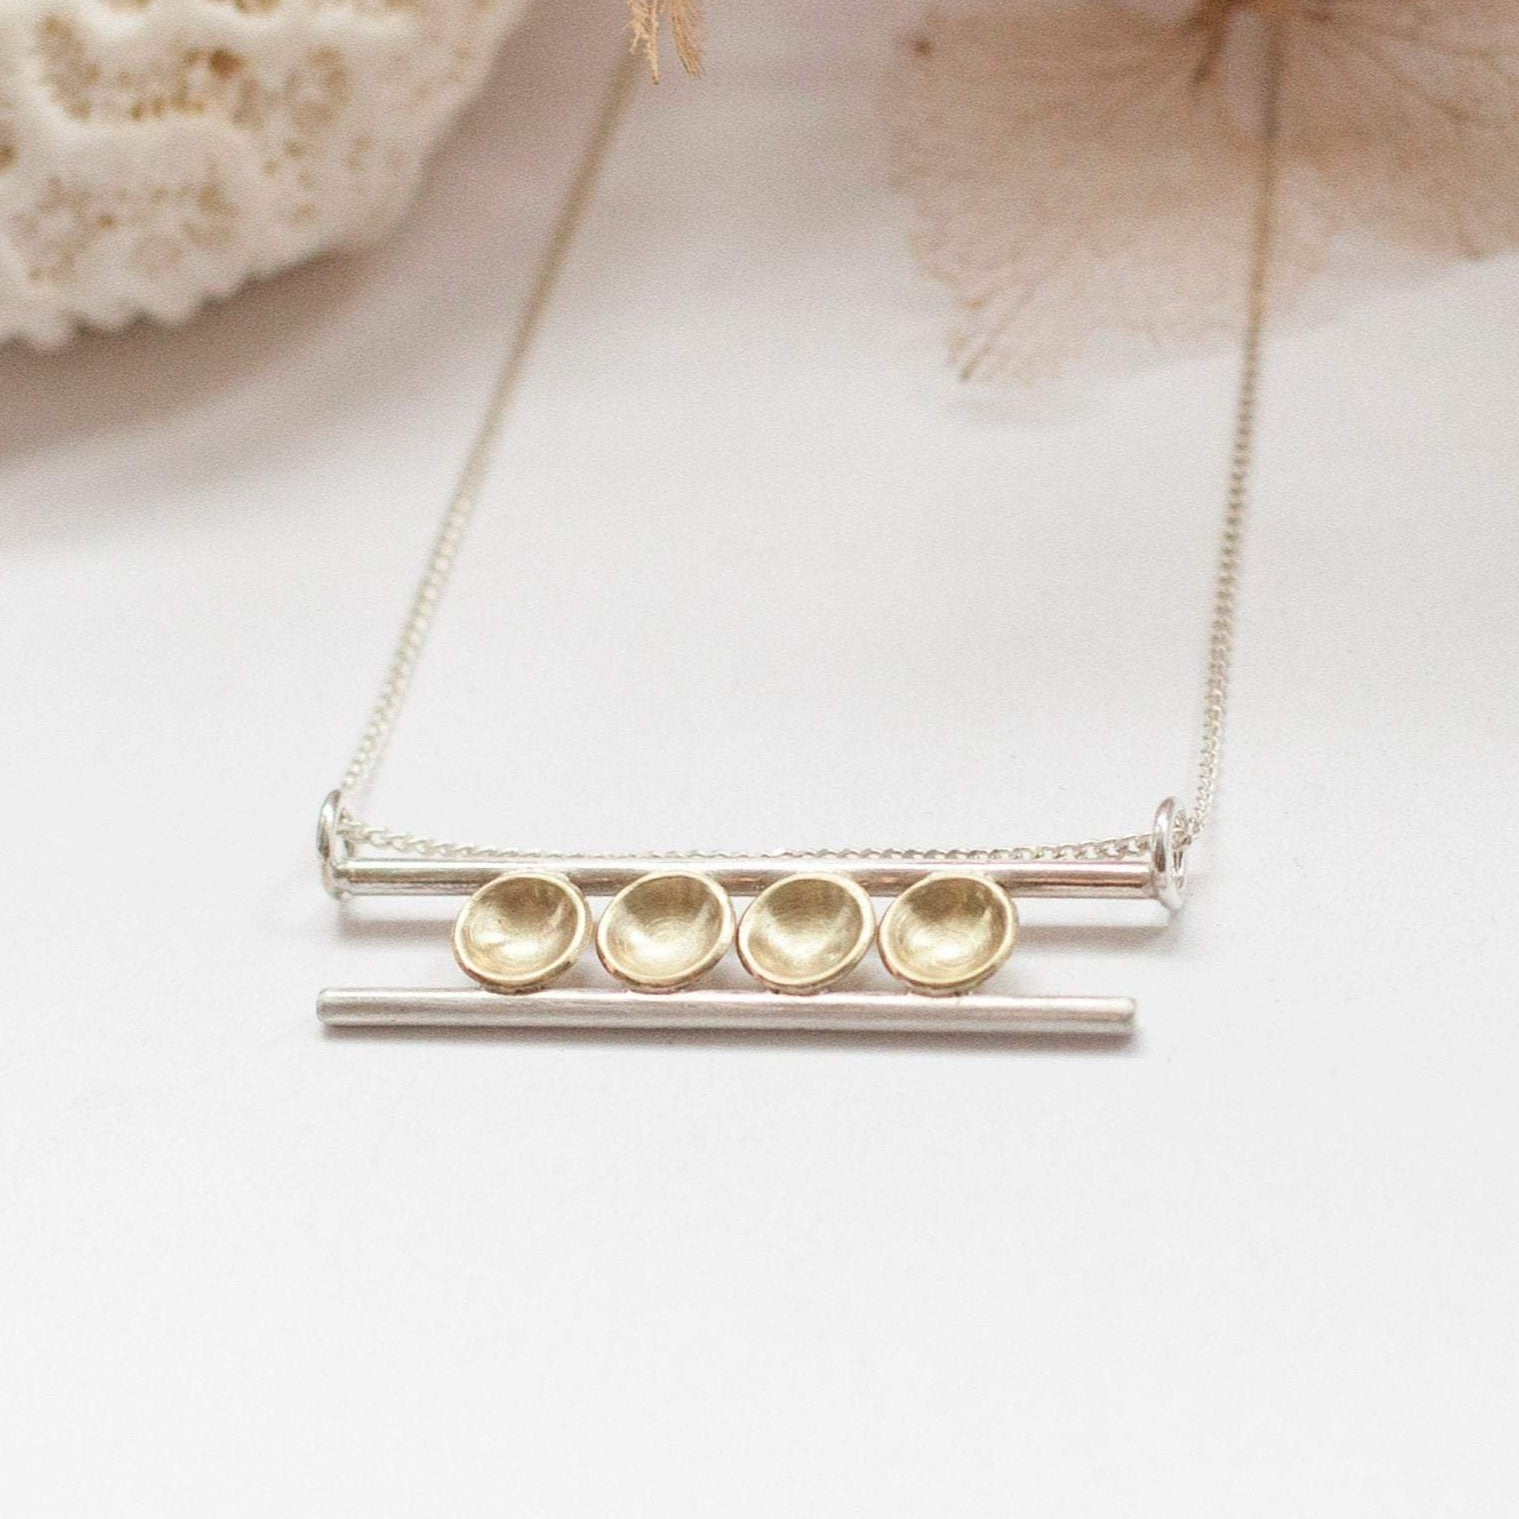 Pendant in brass and silver ~ 4 brass bowls on 2 silver bars